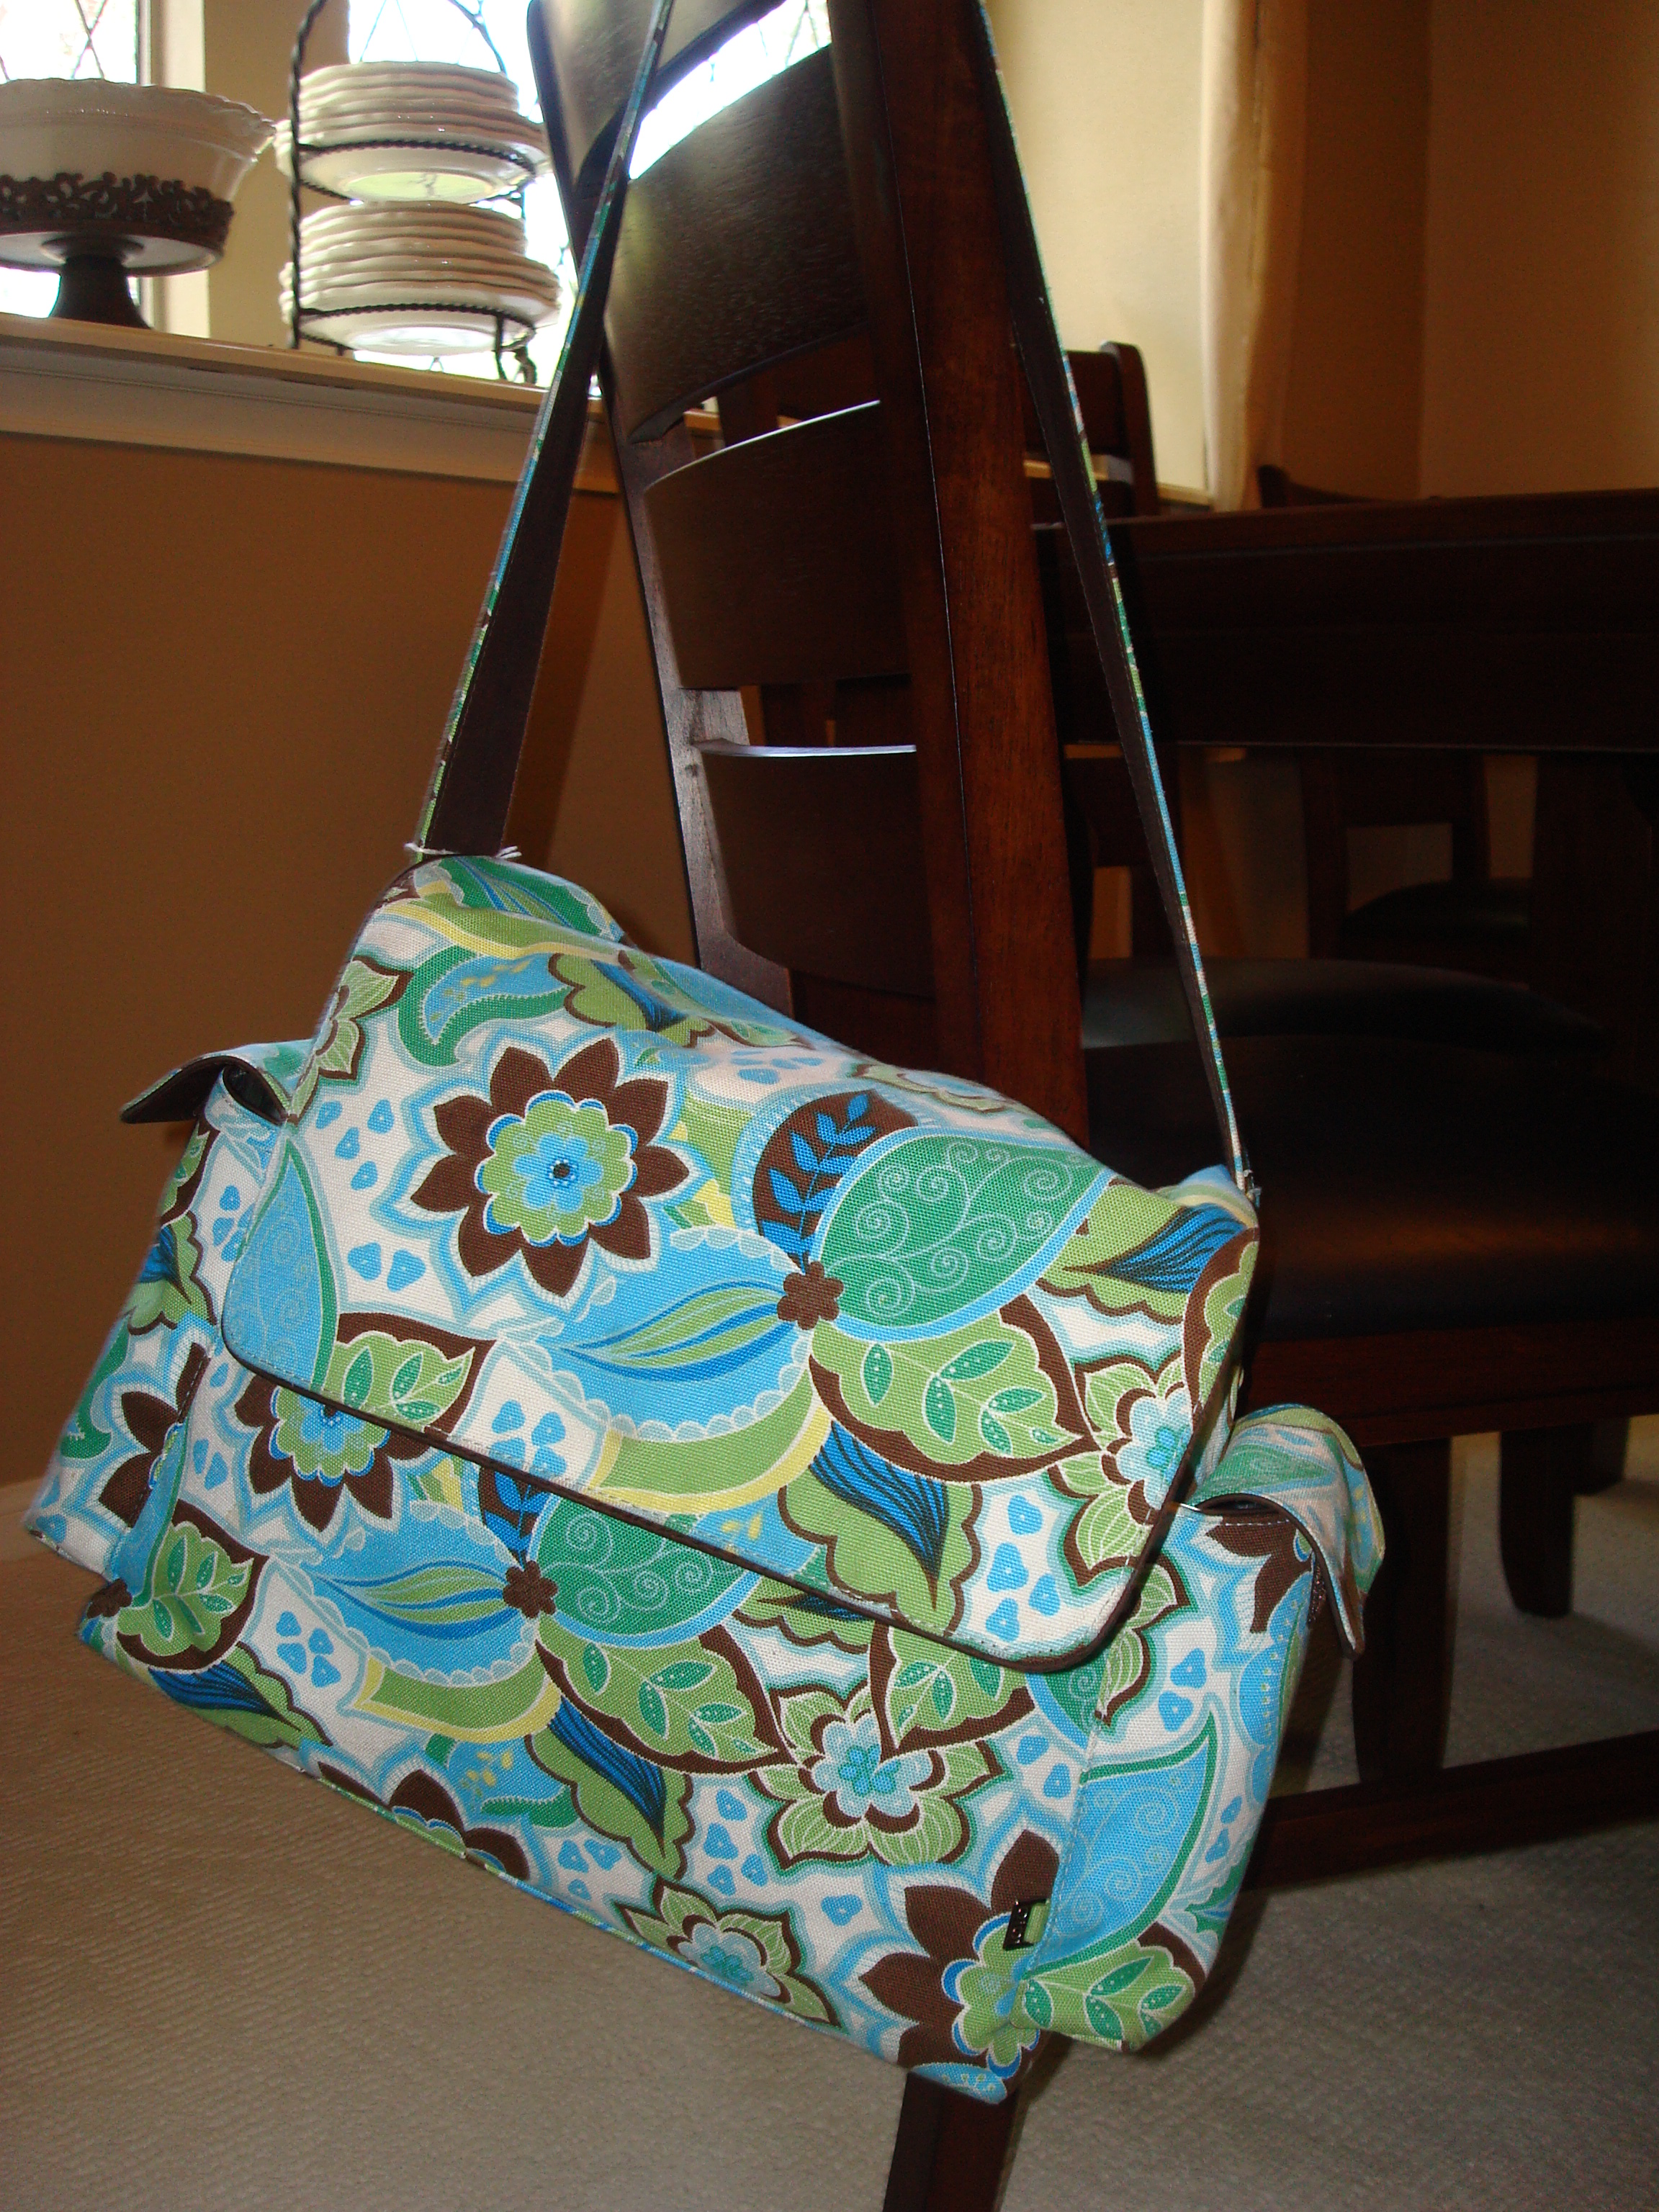 What's in your diaper bag – The Chelsea, Mom to practically 1 year